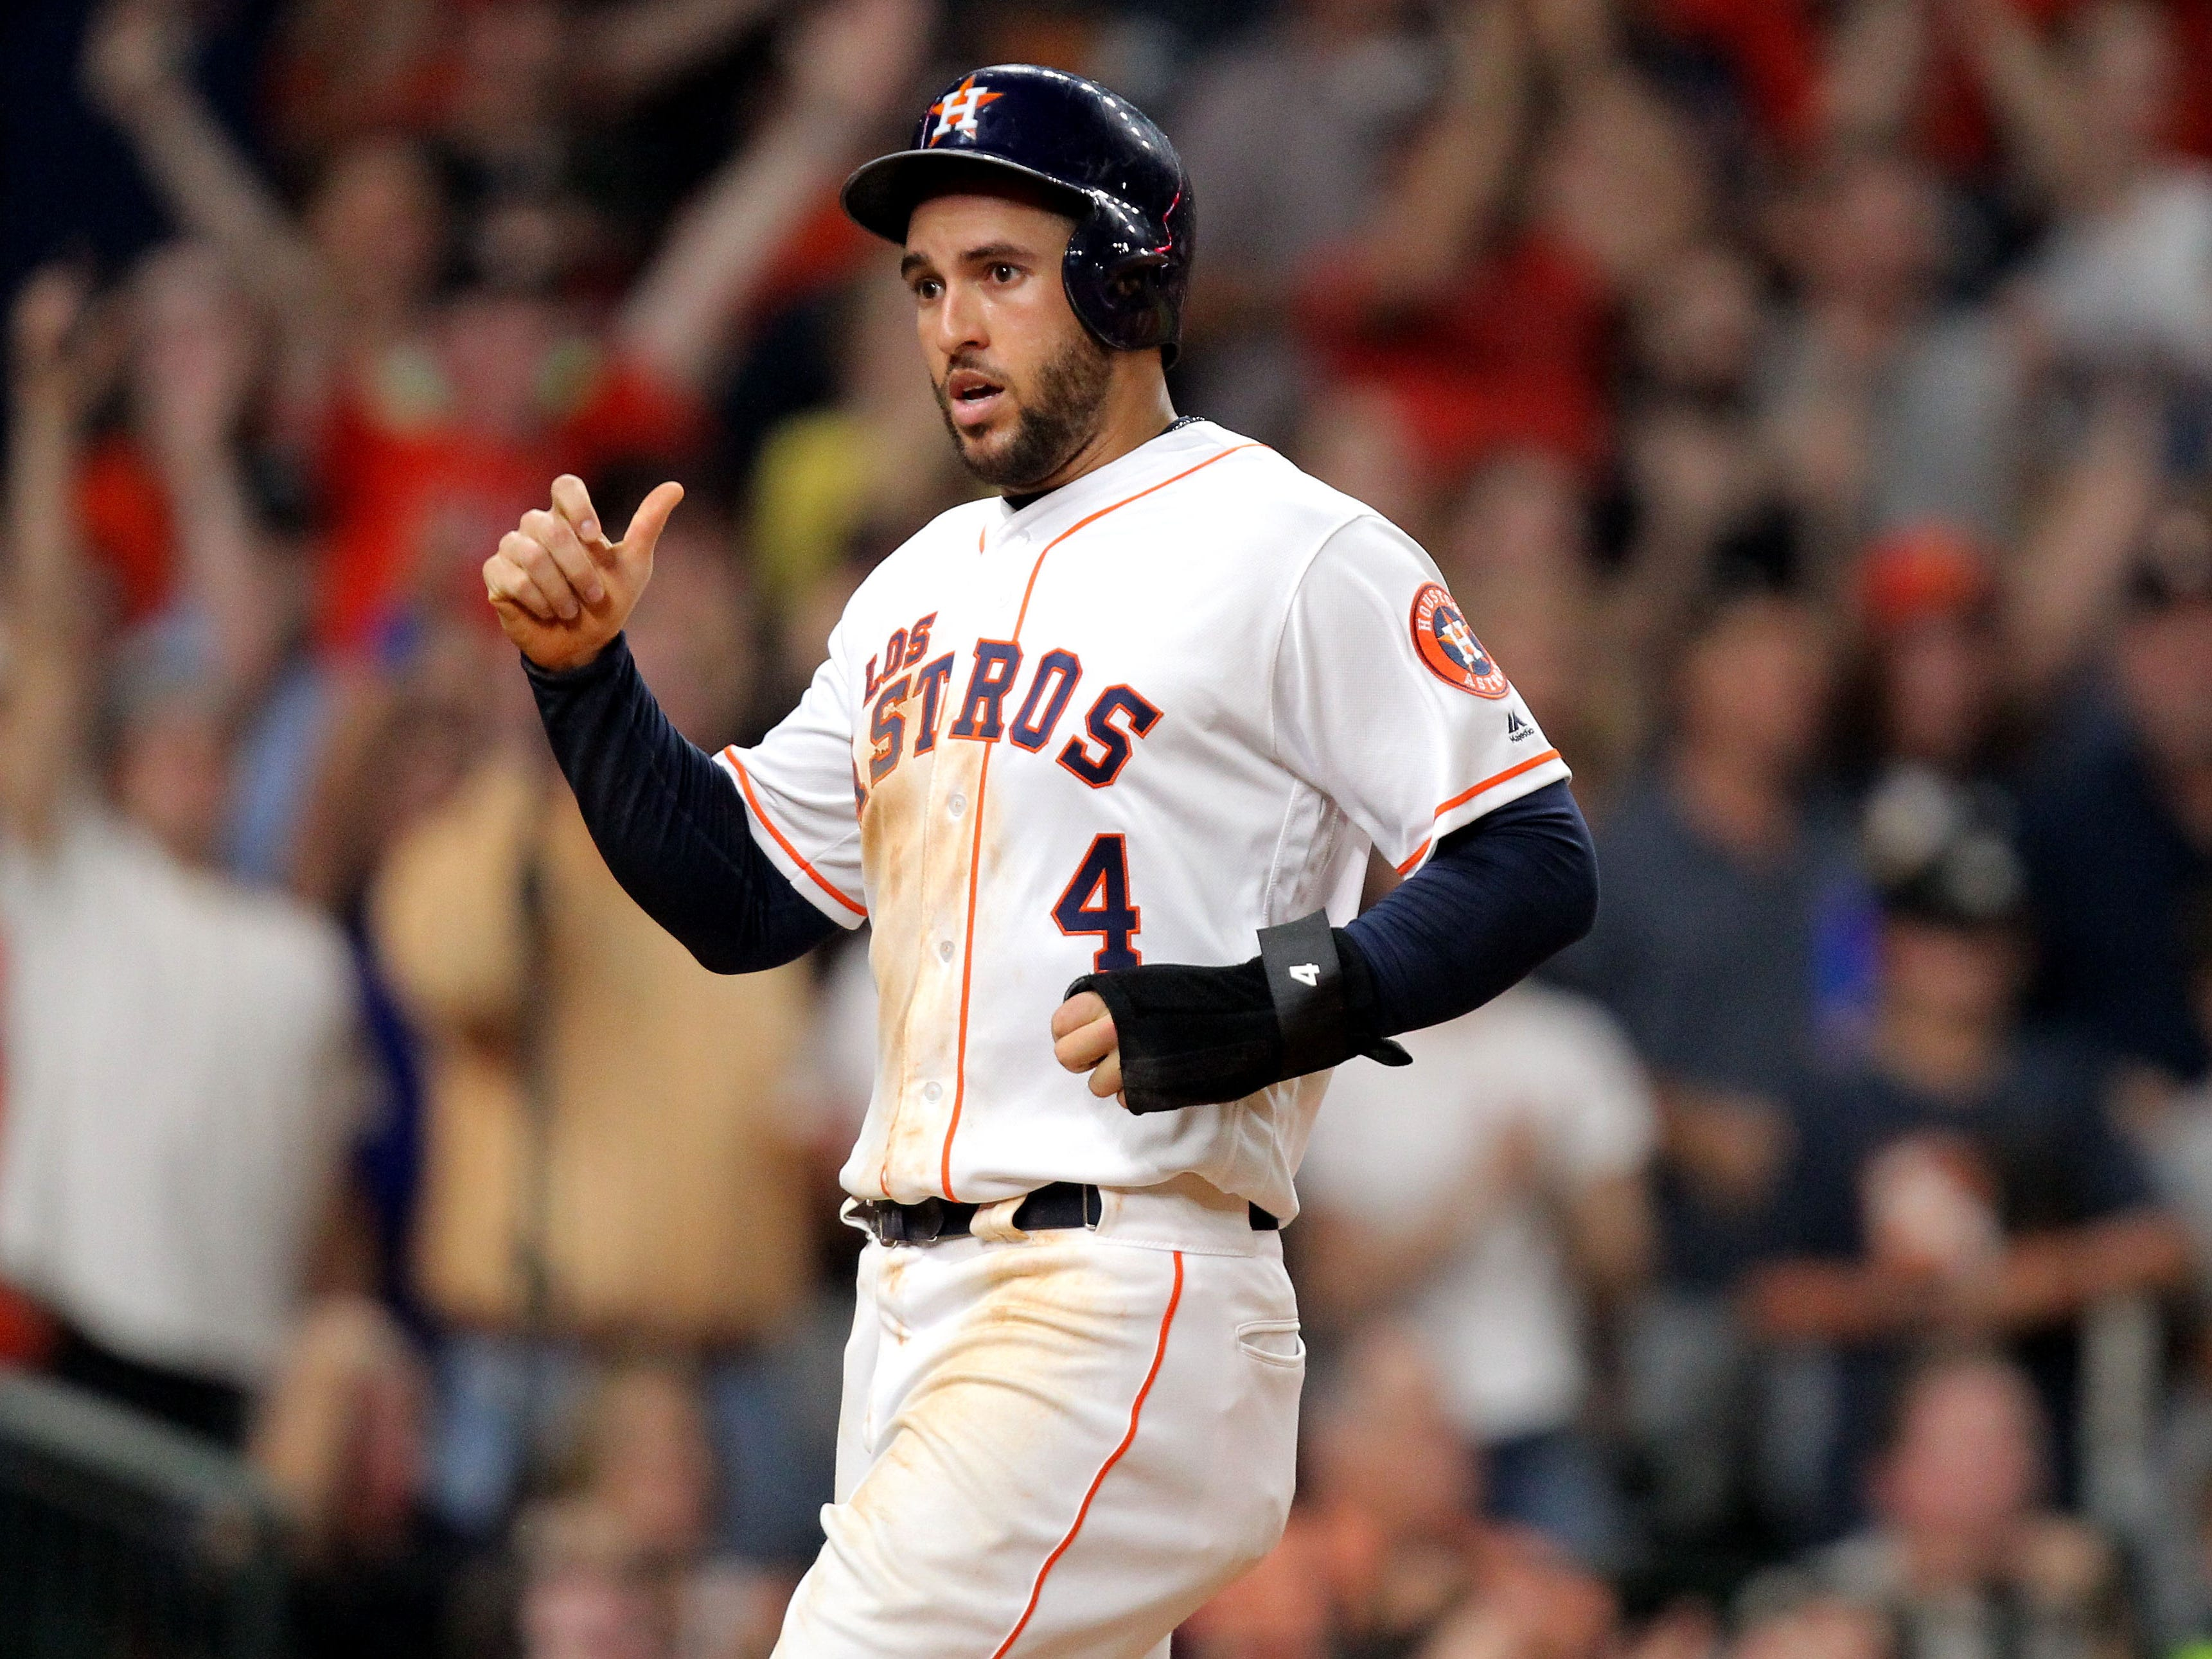 Sep 15, 2018; Houston, TX, USA; Houston Astros center fielder George Springer (4) crosses home plate to score a run against the Arizona Diamondbacks during the sixth inning at Minute Maid Park. Mandatory Credit: Erik Williams-USA TODAY Sports